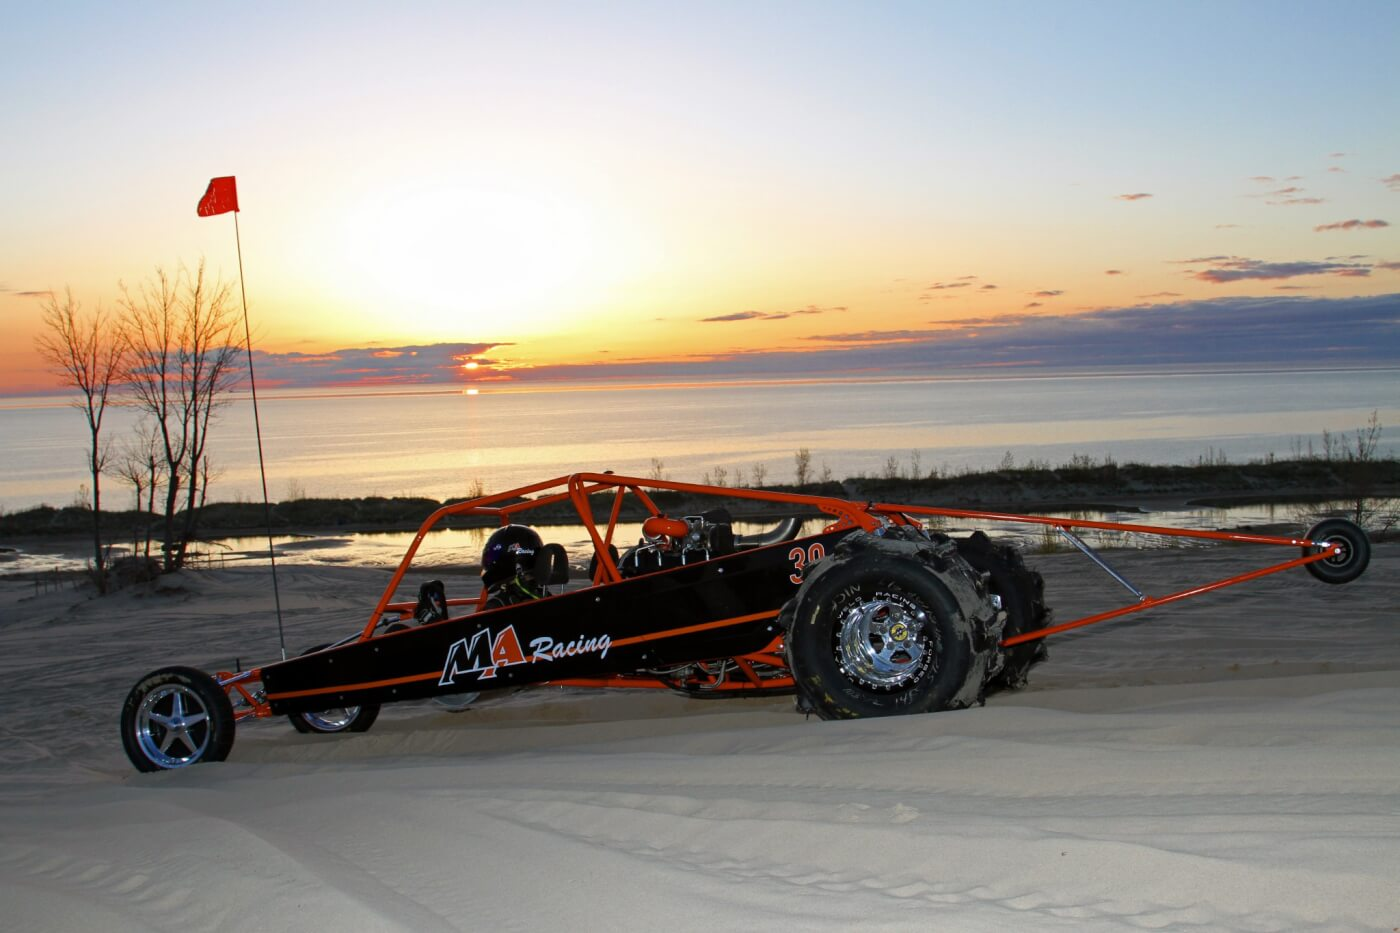 Sunset on Lake Michigan is a beautiful sight, especially if you're a gearhead with a Duramax-powered sand rail to blast across the dunes.